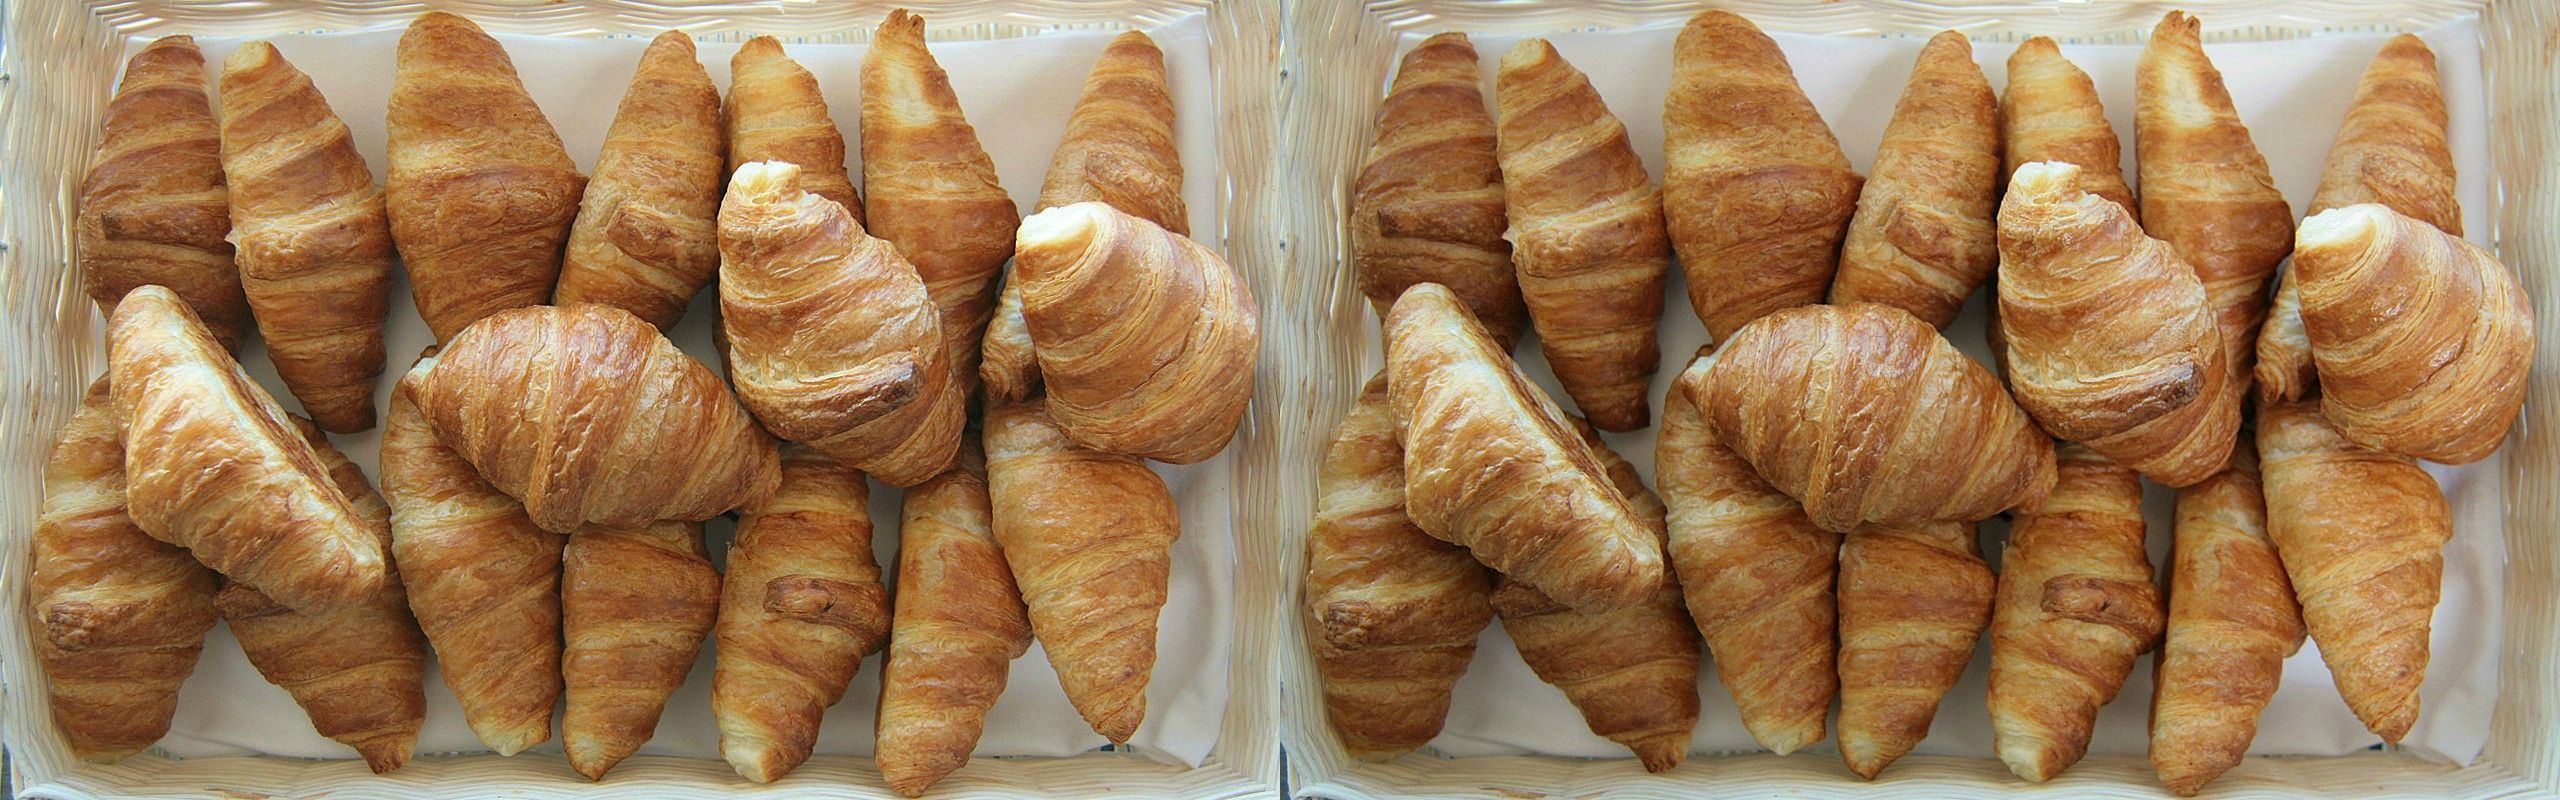 Anyone craving for some croissants? This side-by-side image looks even better with 3DWiggle.